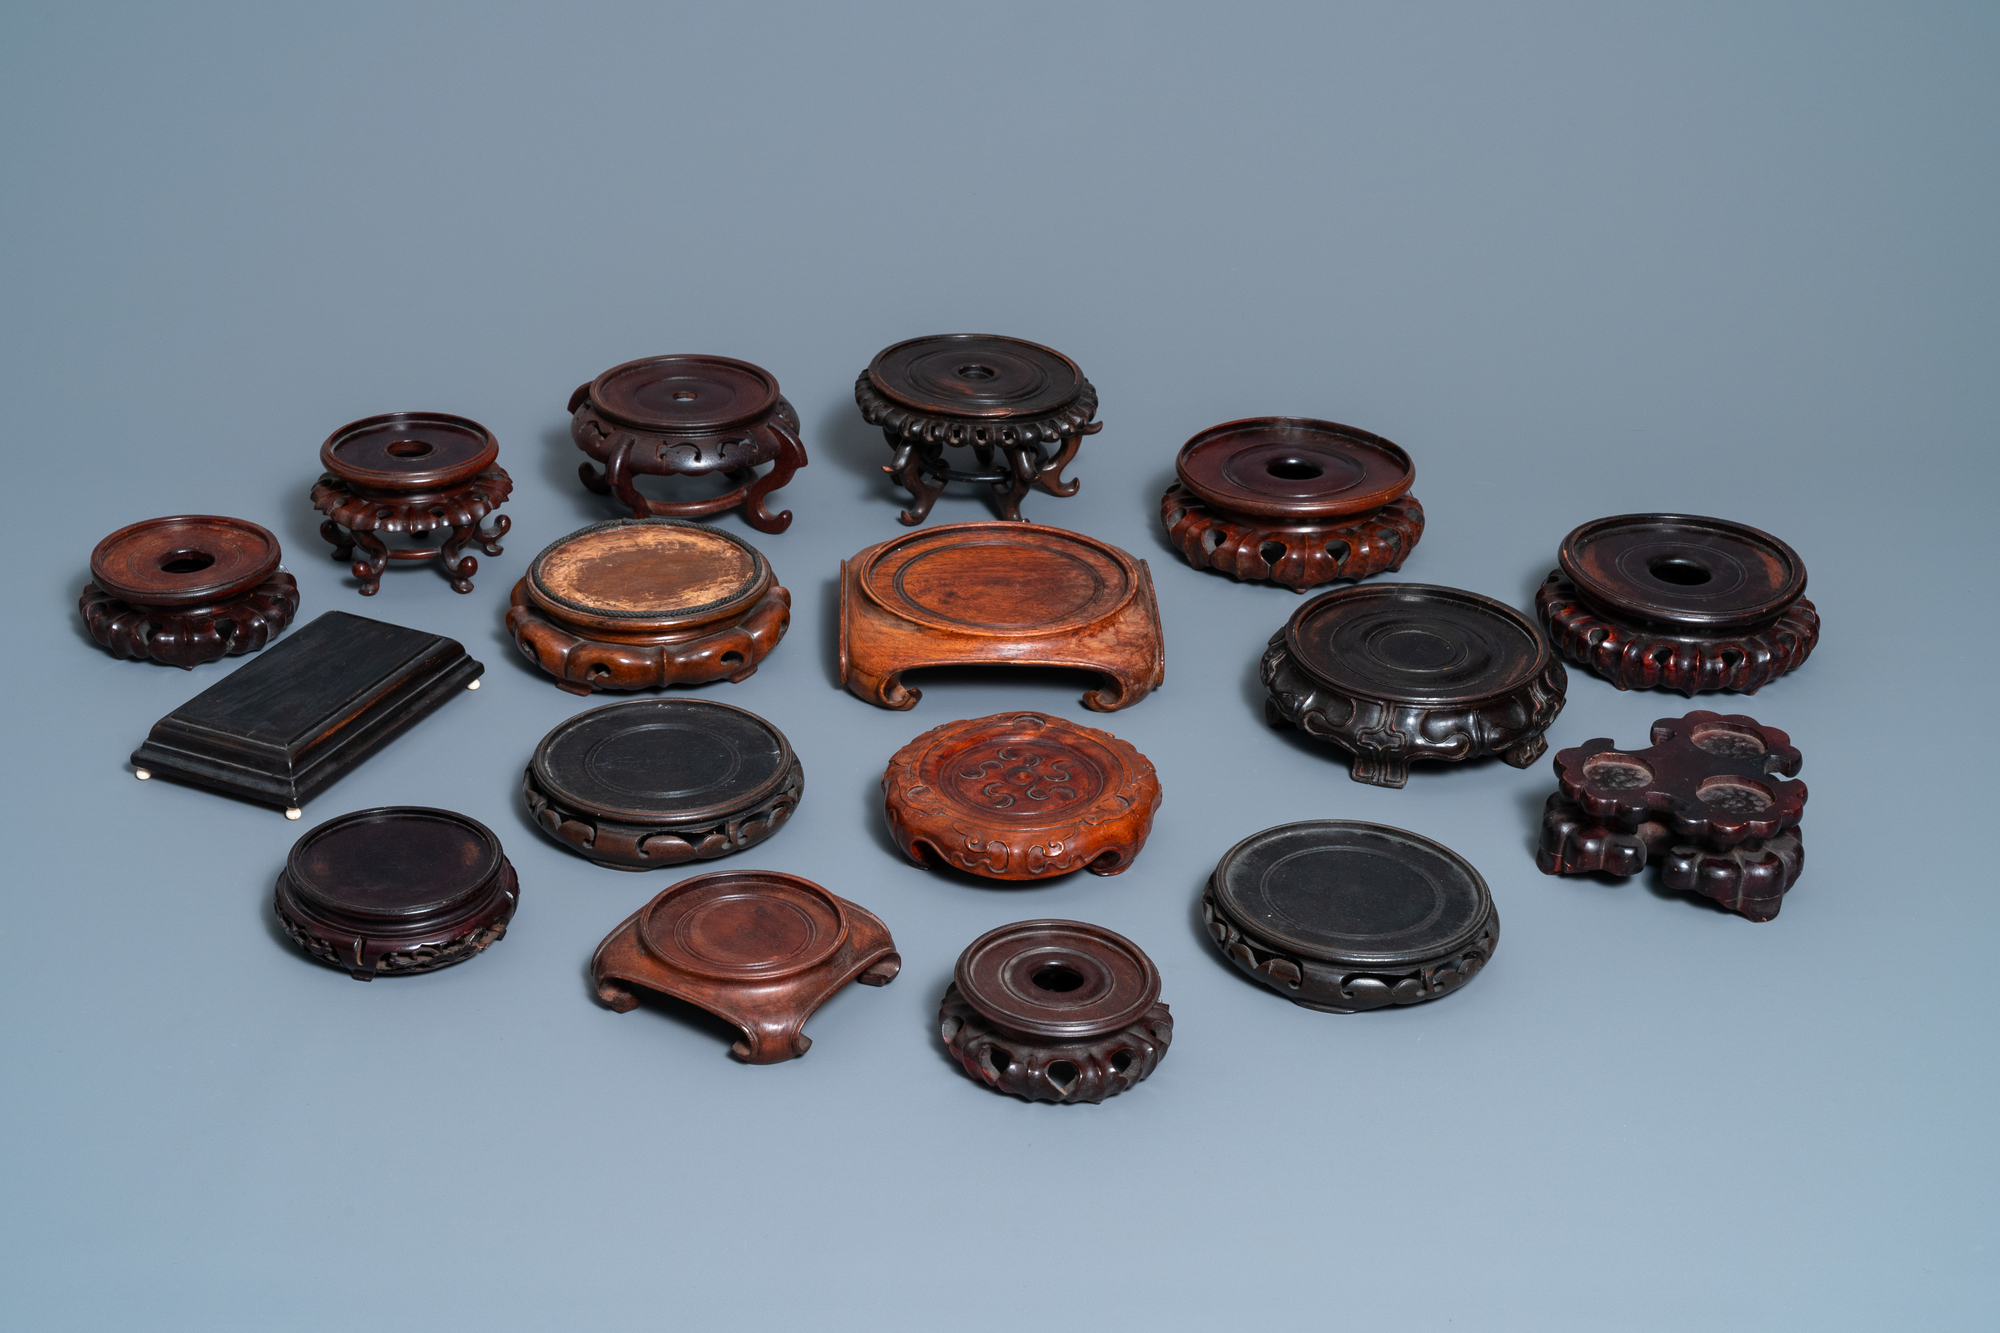 64 Chinese carved wooden stands, 19/20th C. - Image 3 of 4